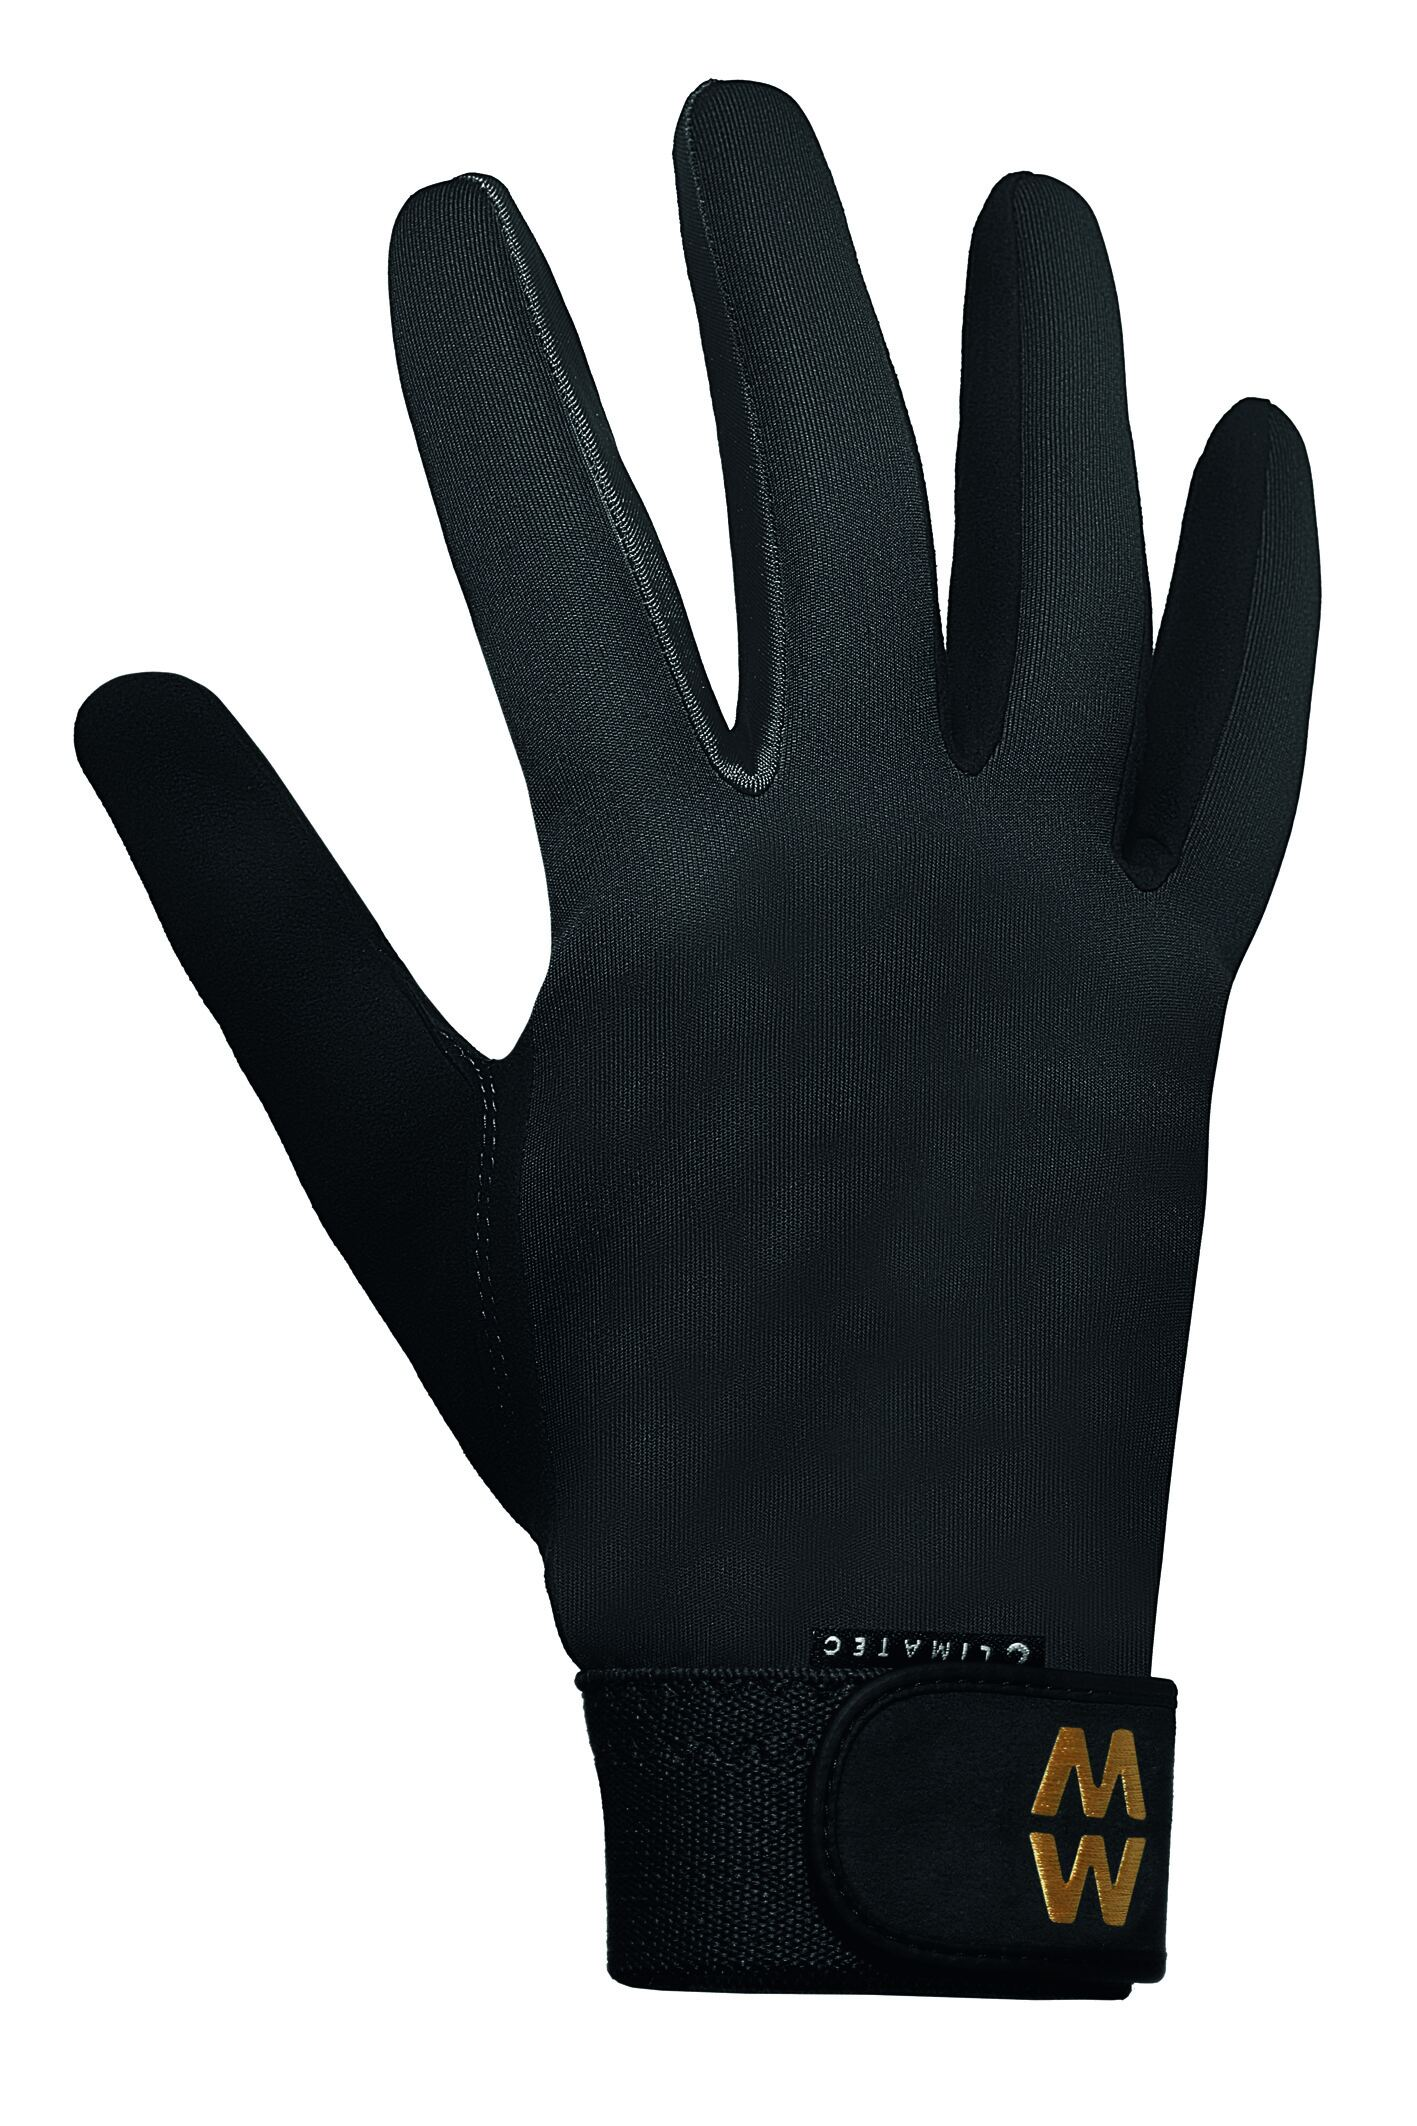 Image of 1 Pair Black MacWet Long Climatec Sports Gloves Unisex 10 Unisex - Macwet